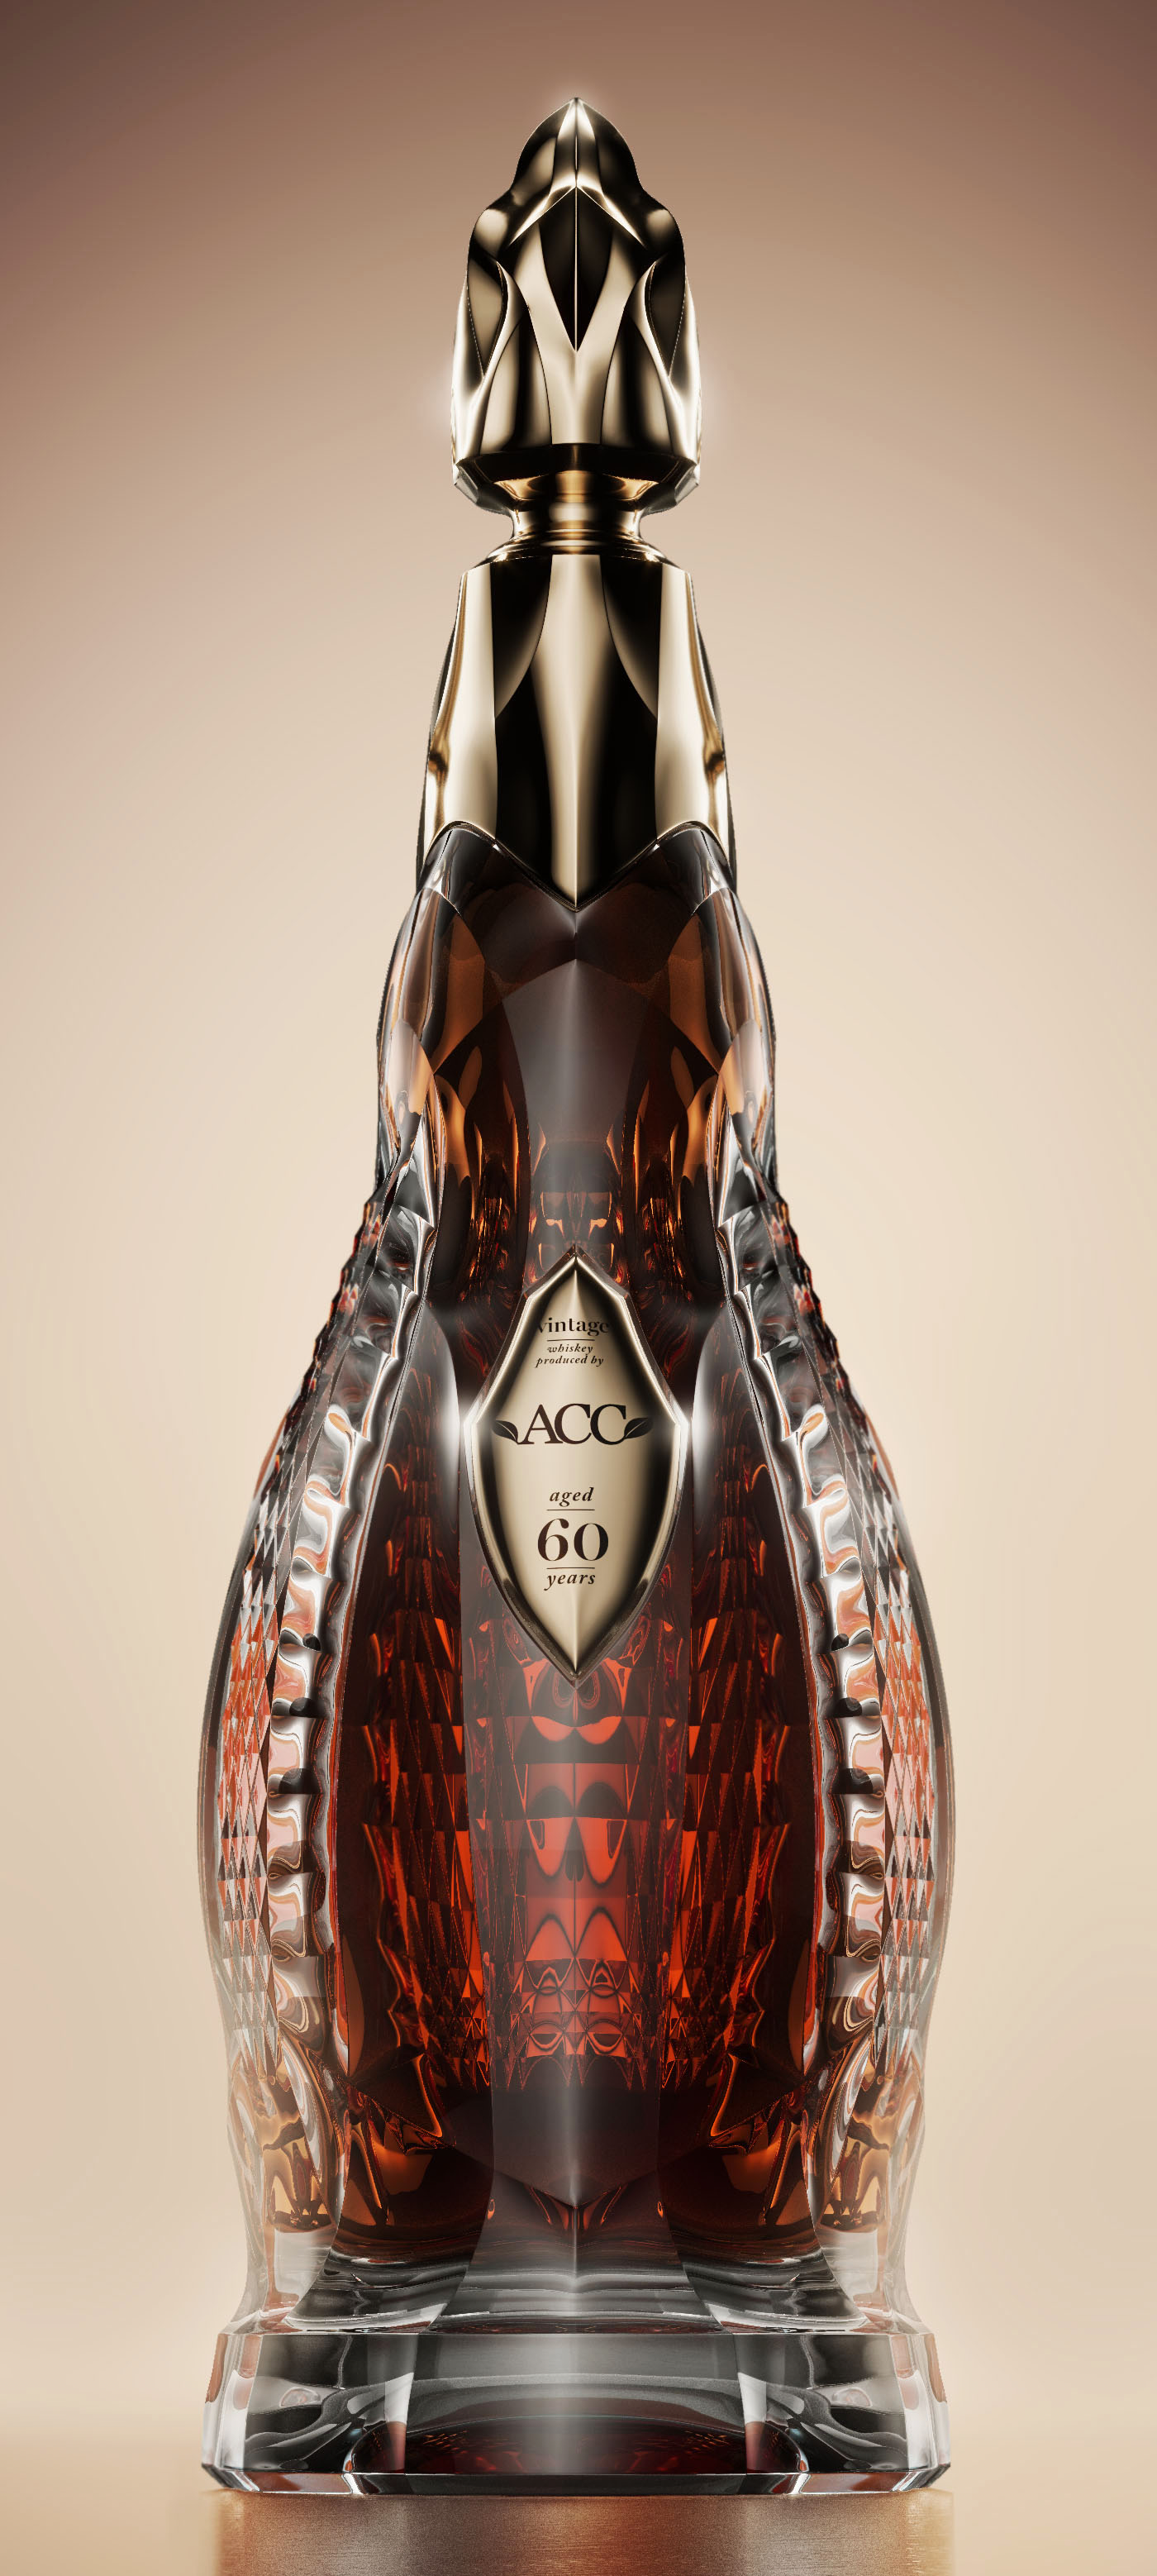 Luxury whisky bottle 2.jpg